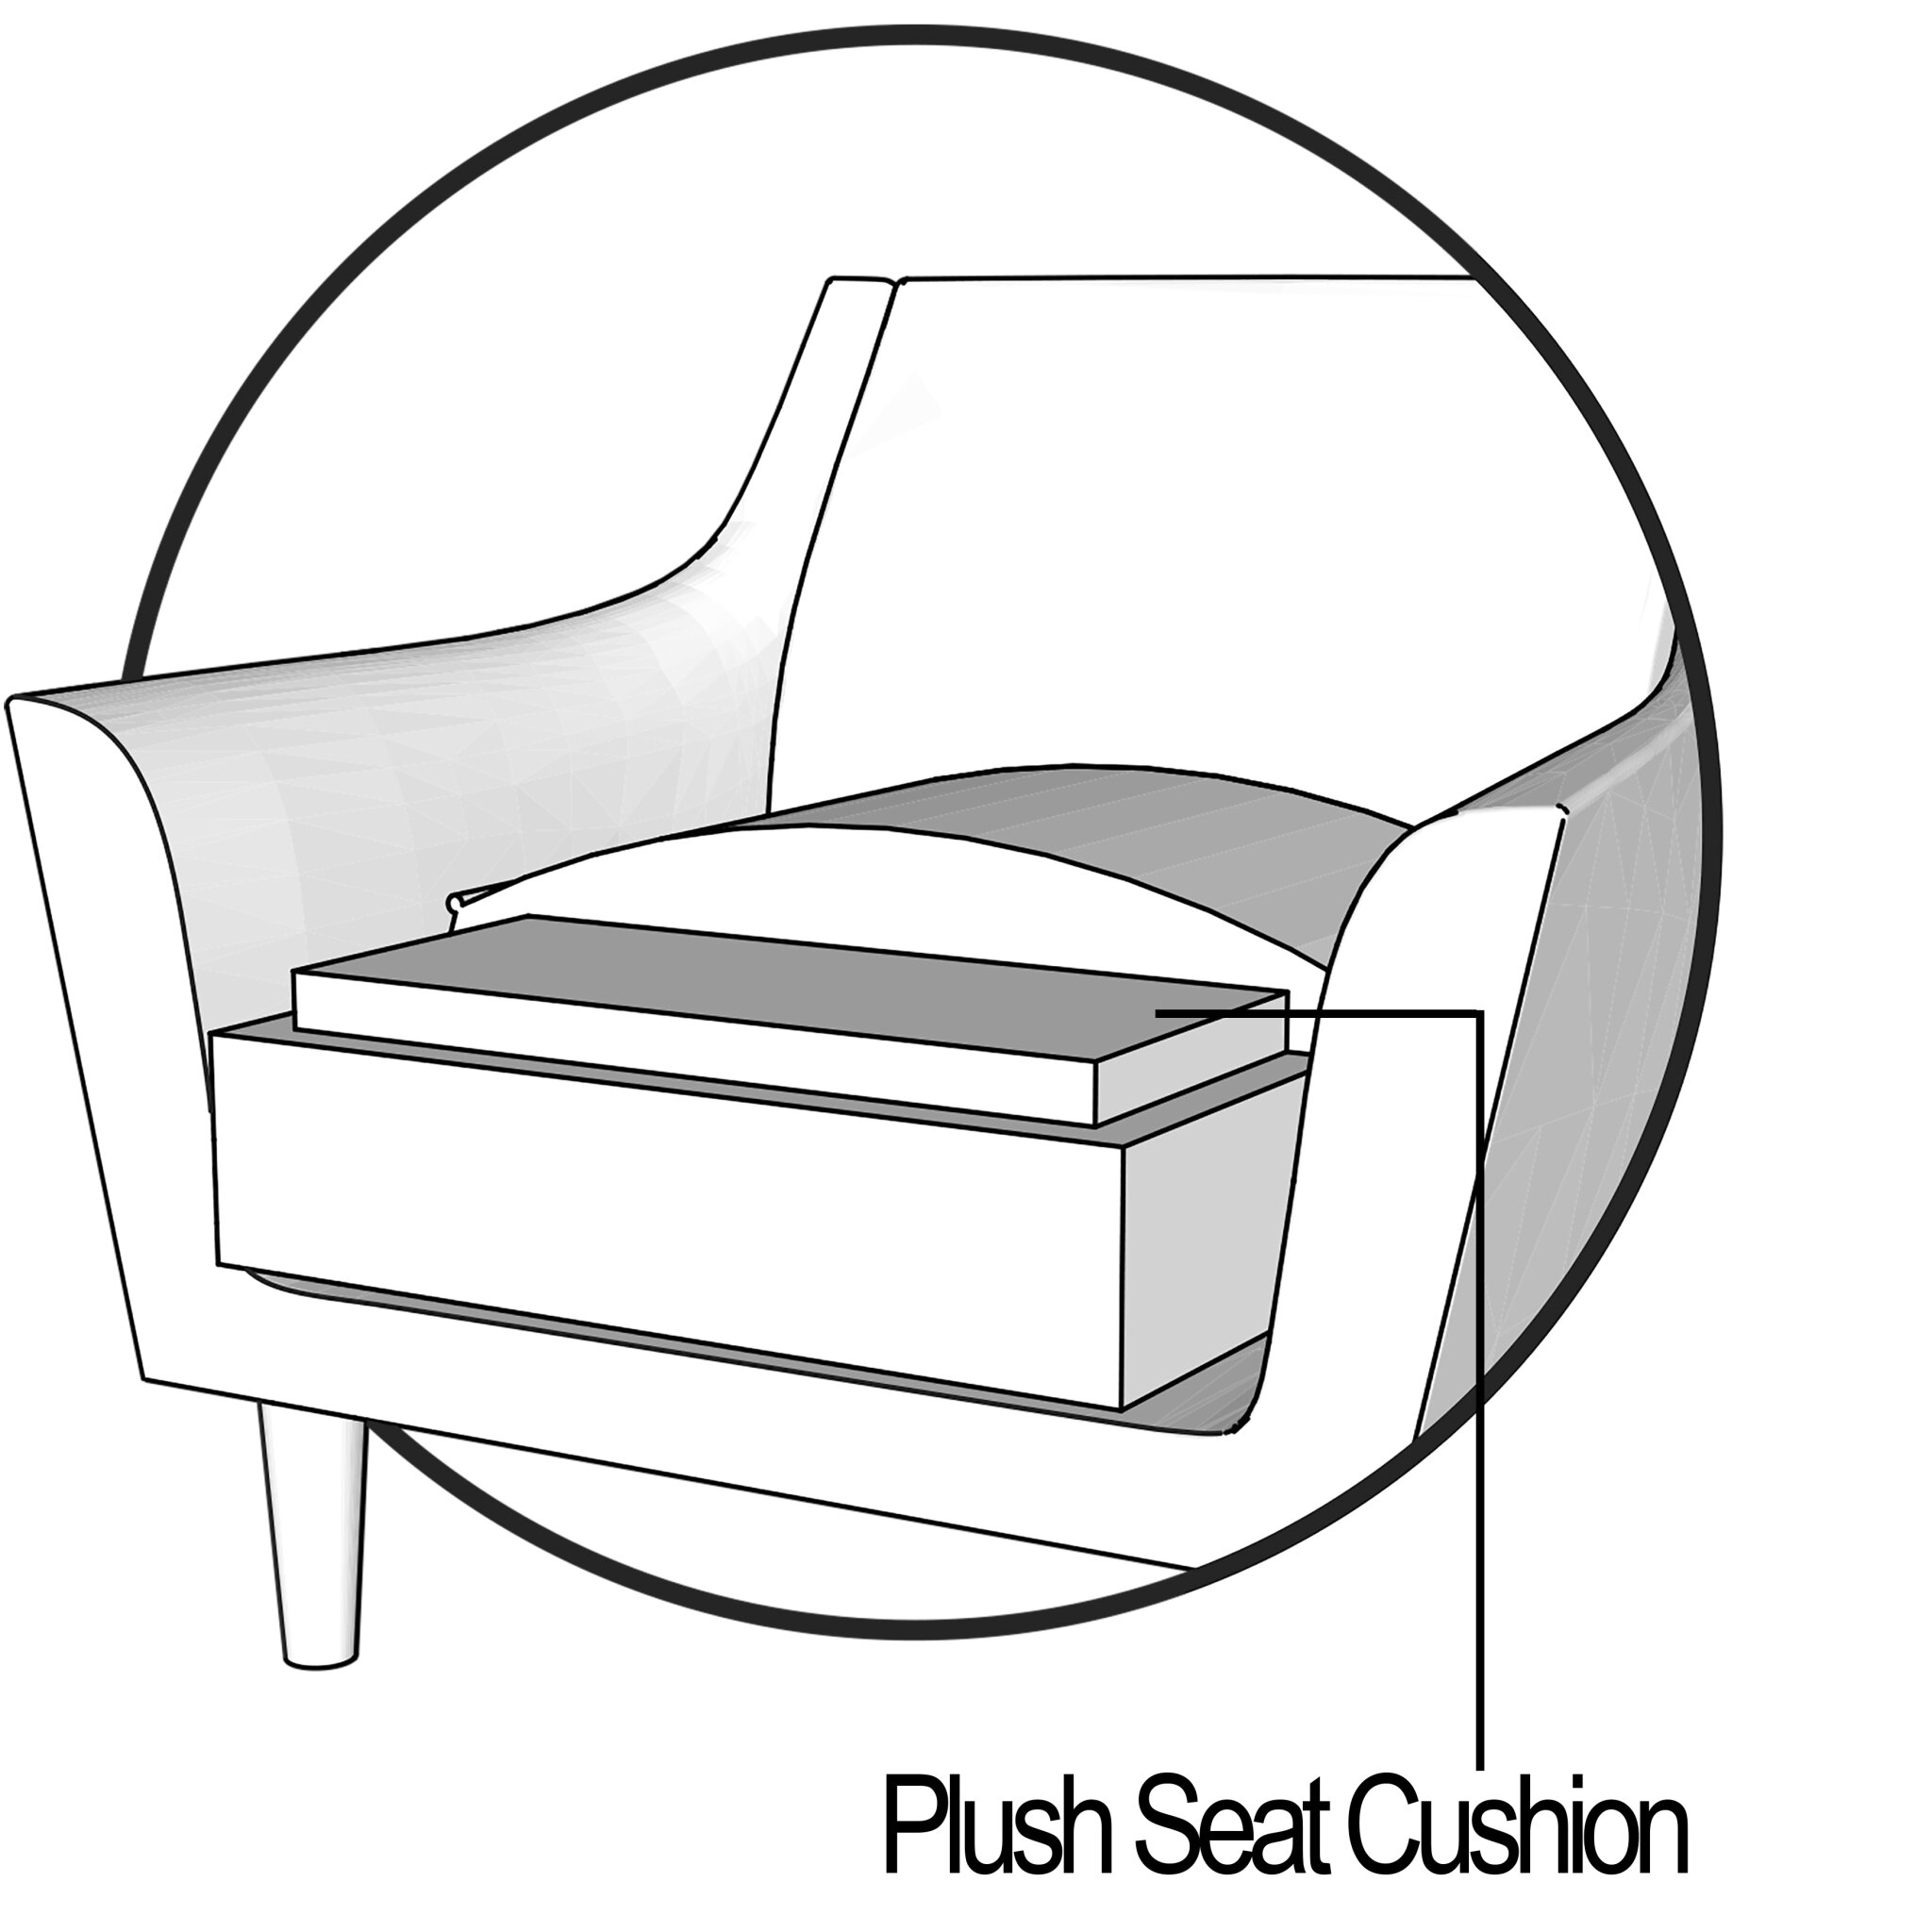 Plush Seat Cushion